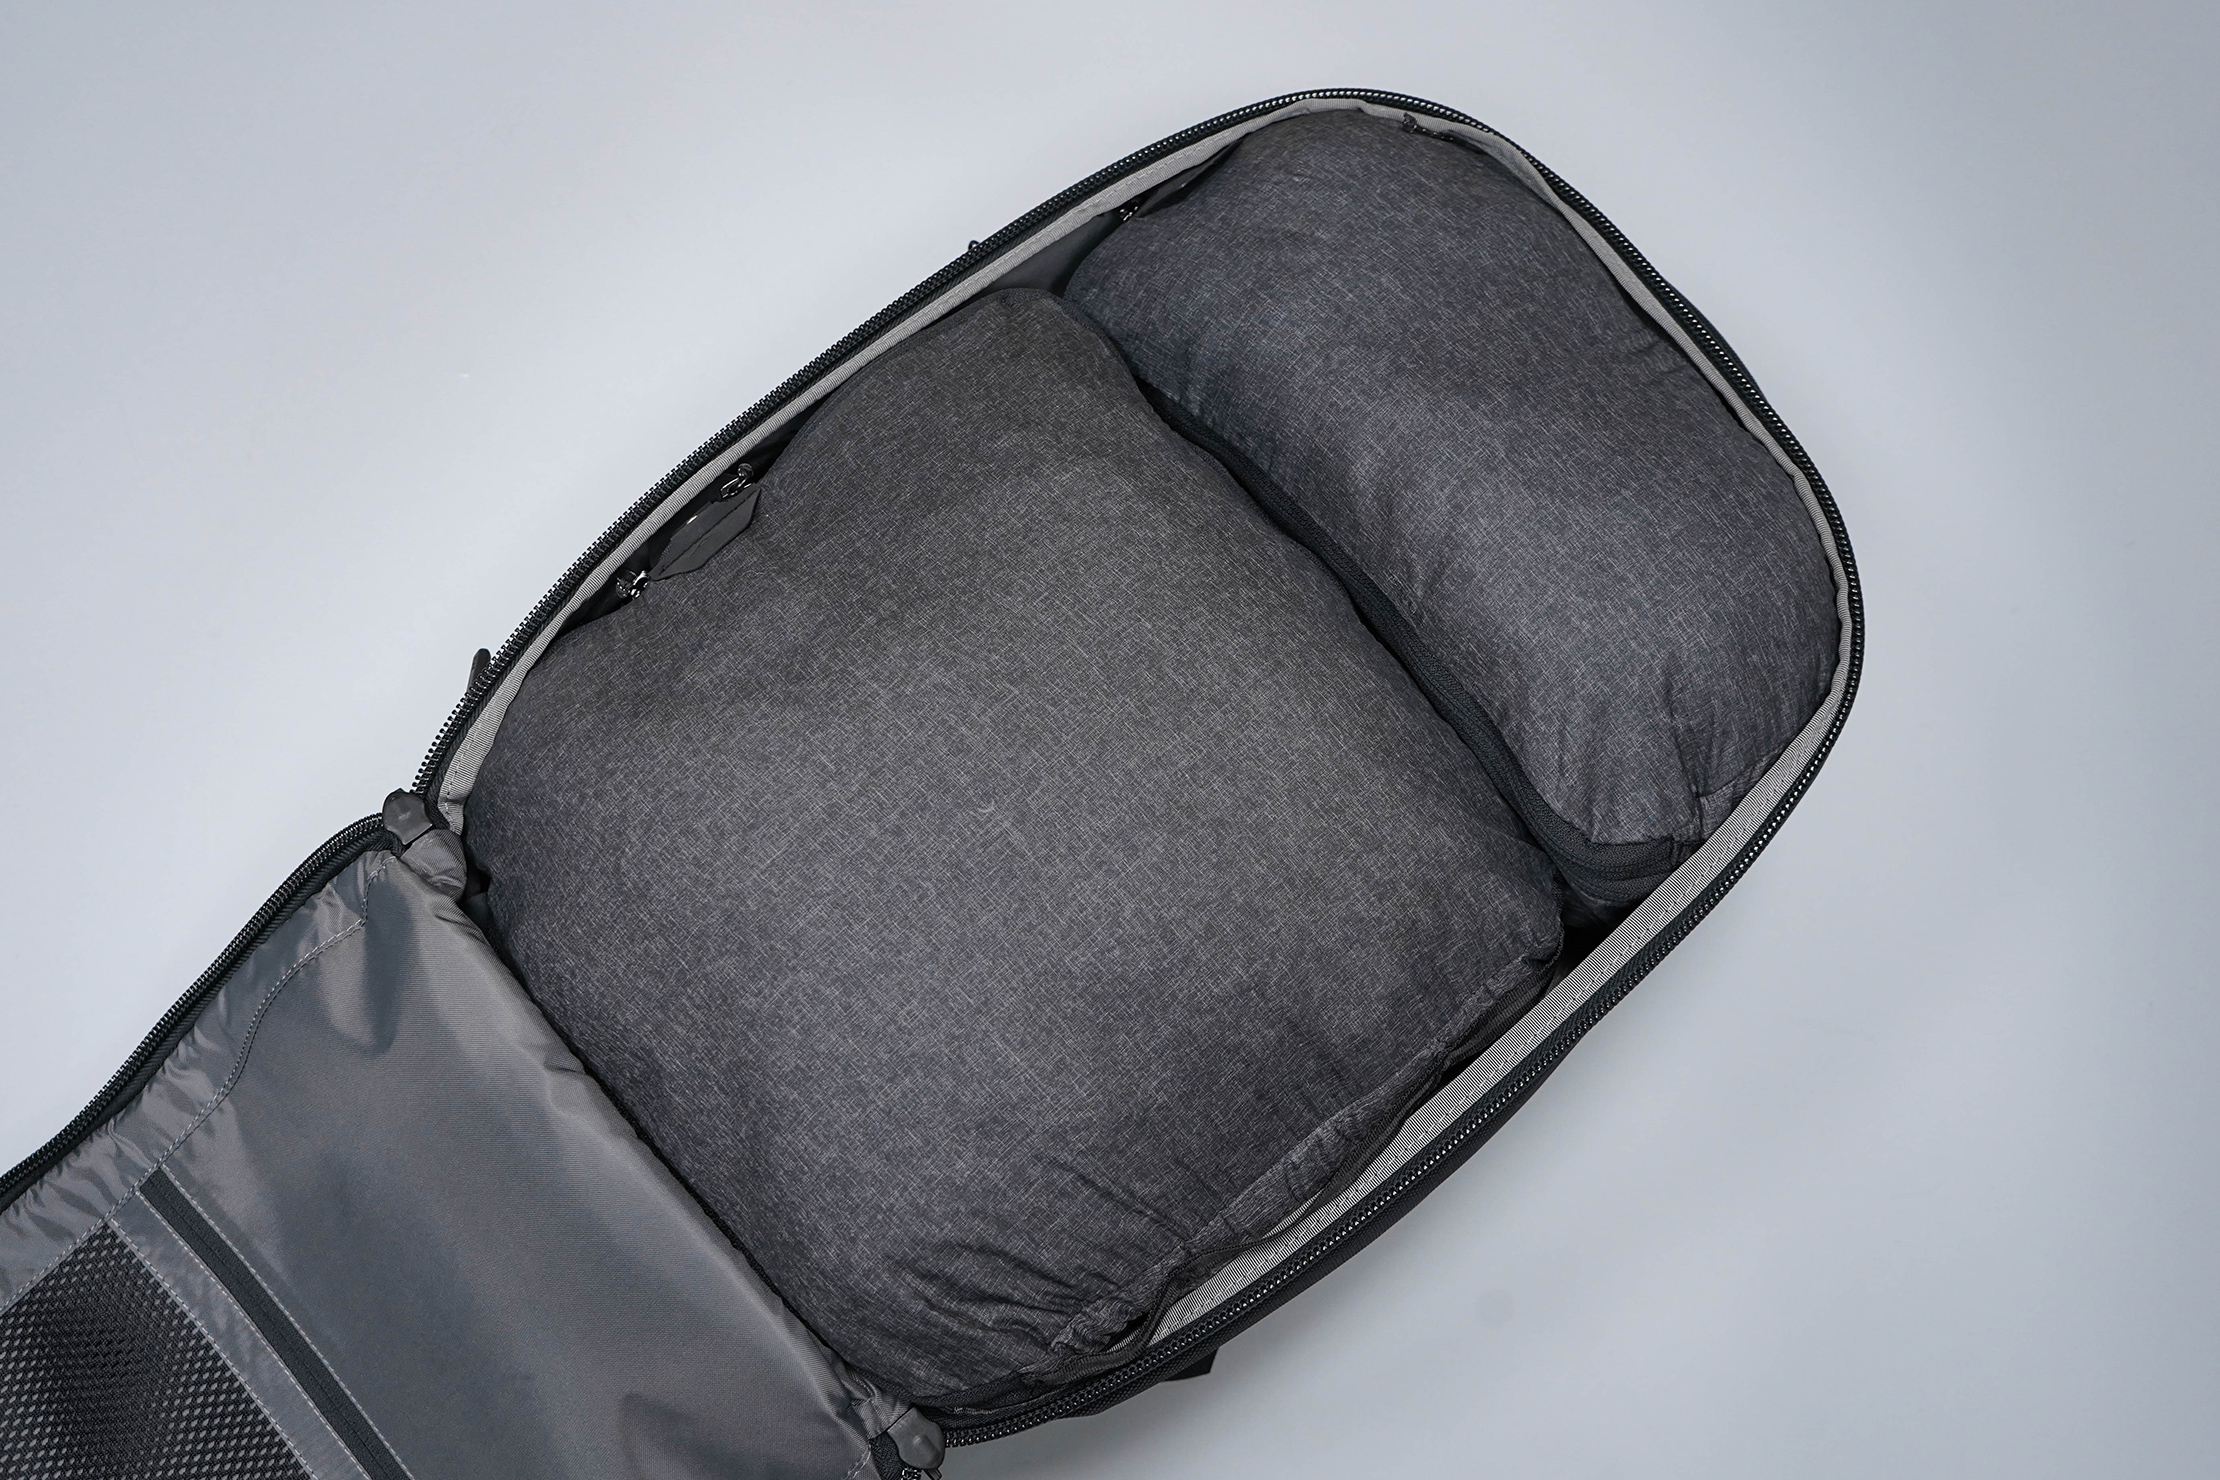 Aer Travel Pack 2 Small Packing Cubes